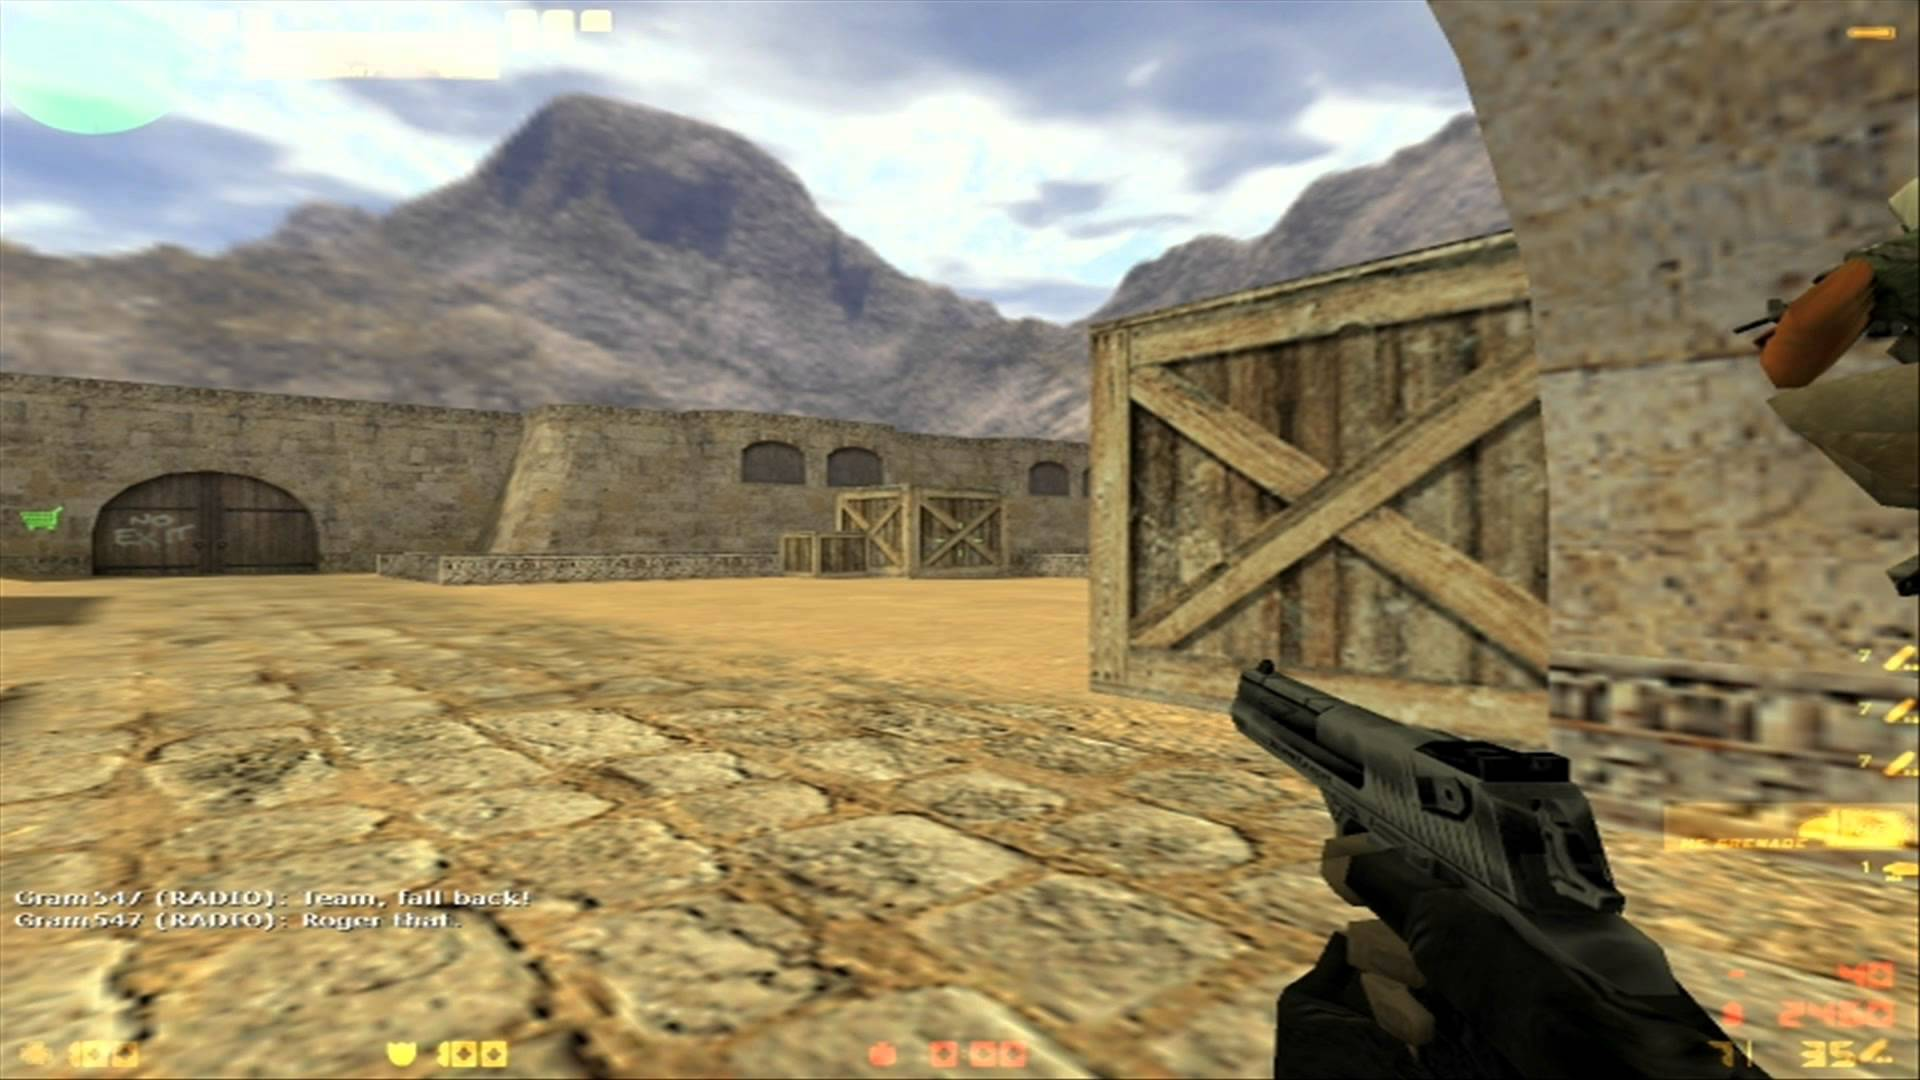 Maps for Counter-Strike 1.6